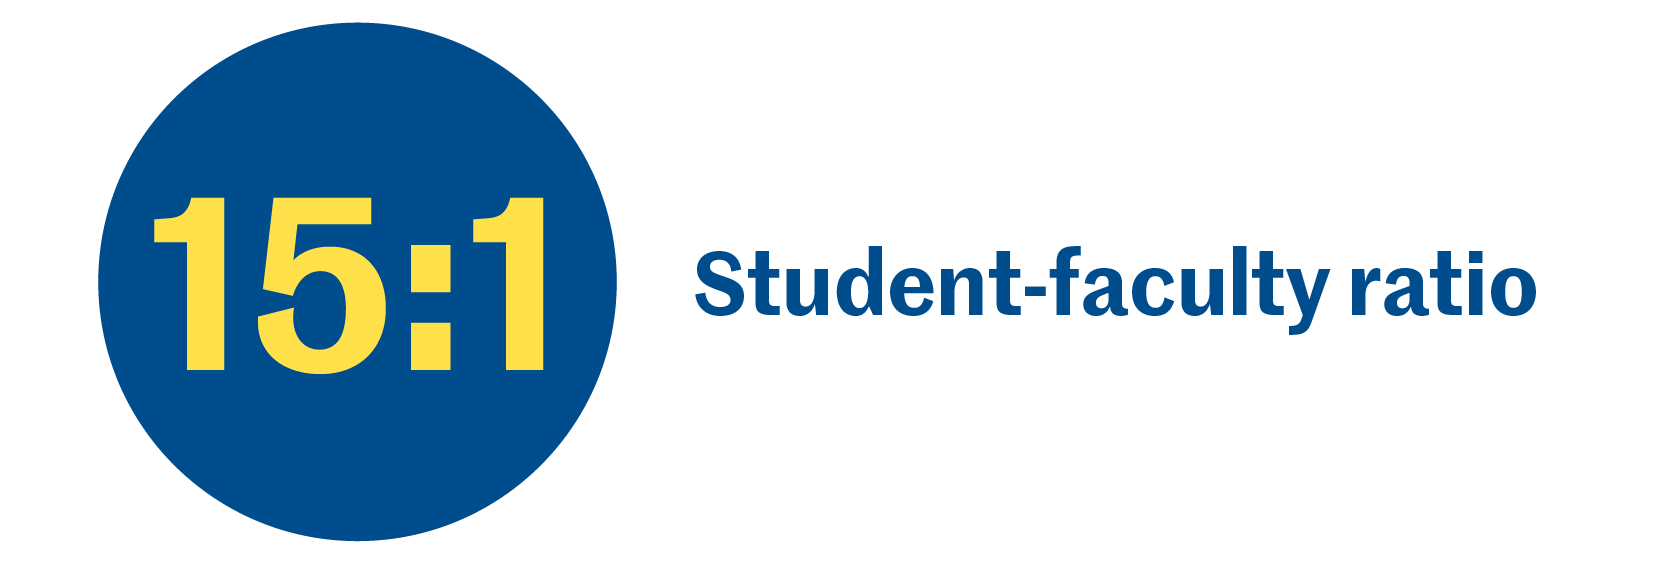 15:1 Student-faculty ratio